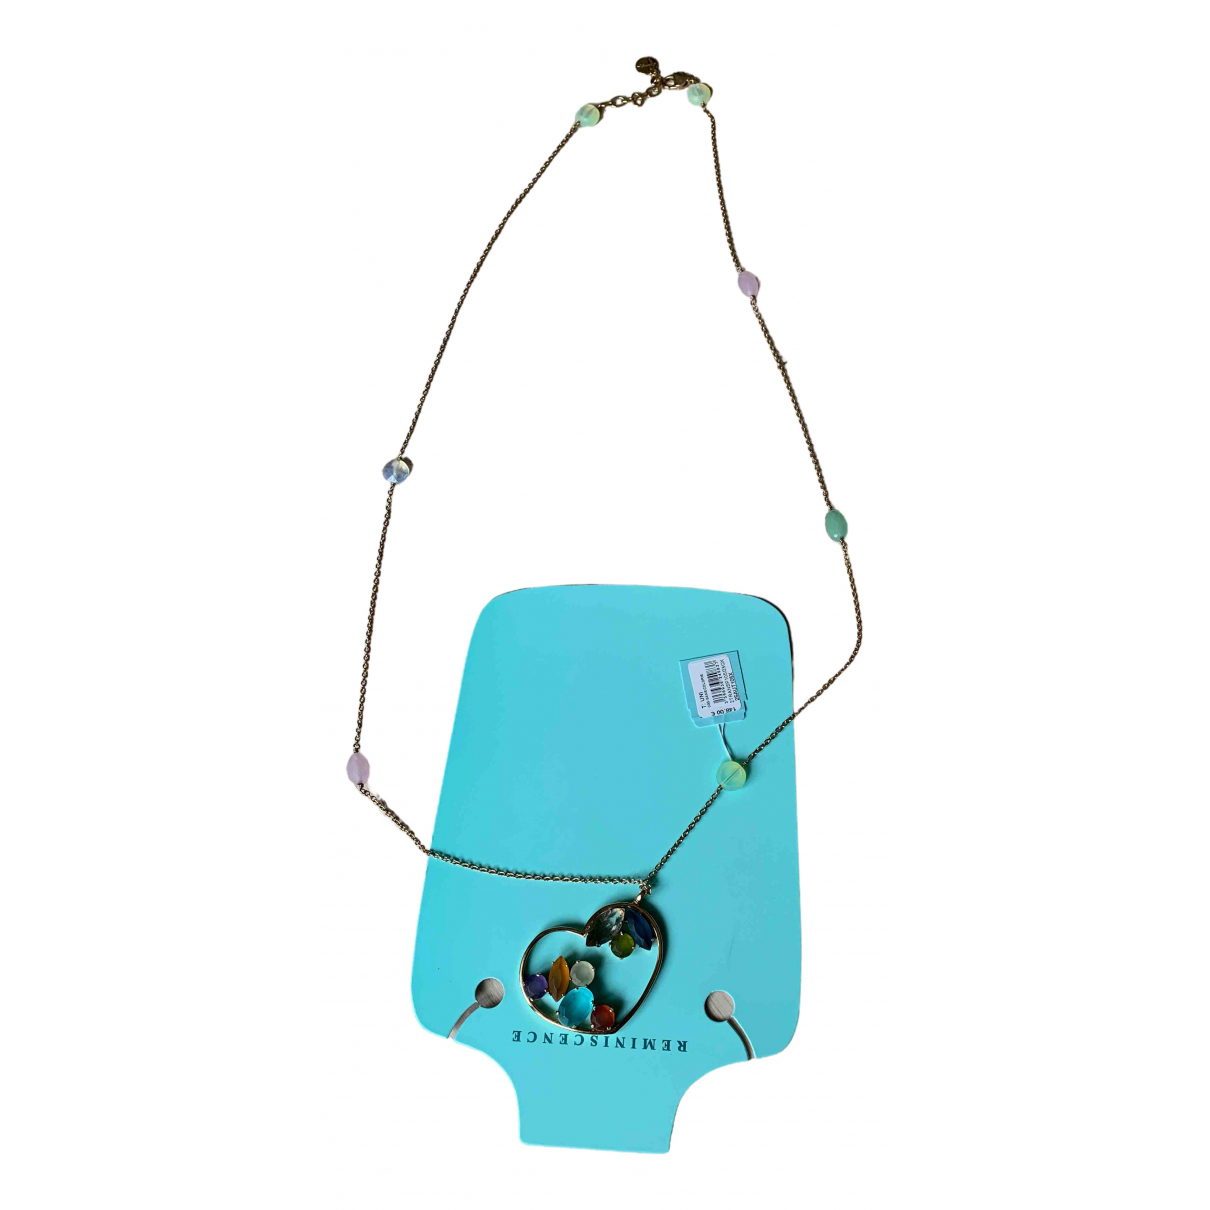 Reminiscence N Multicolour Metal necklace for Women N